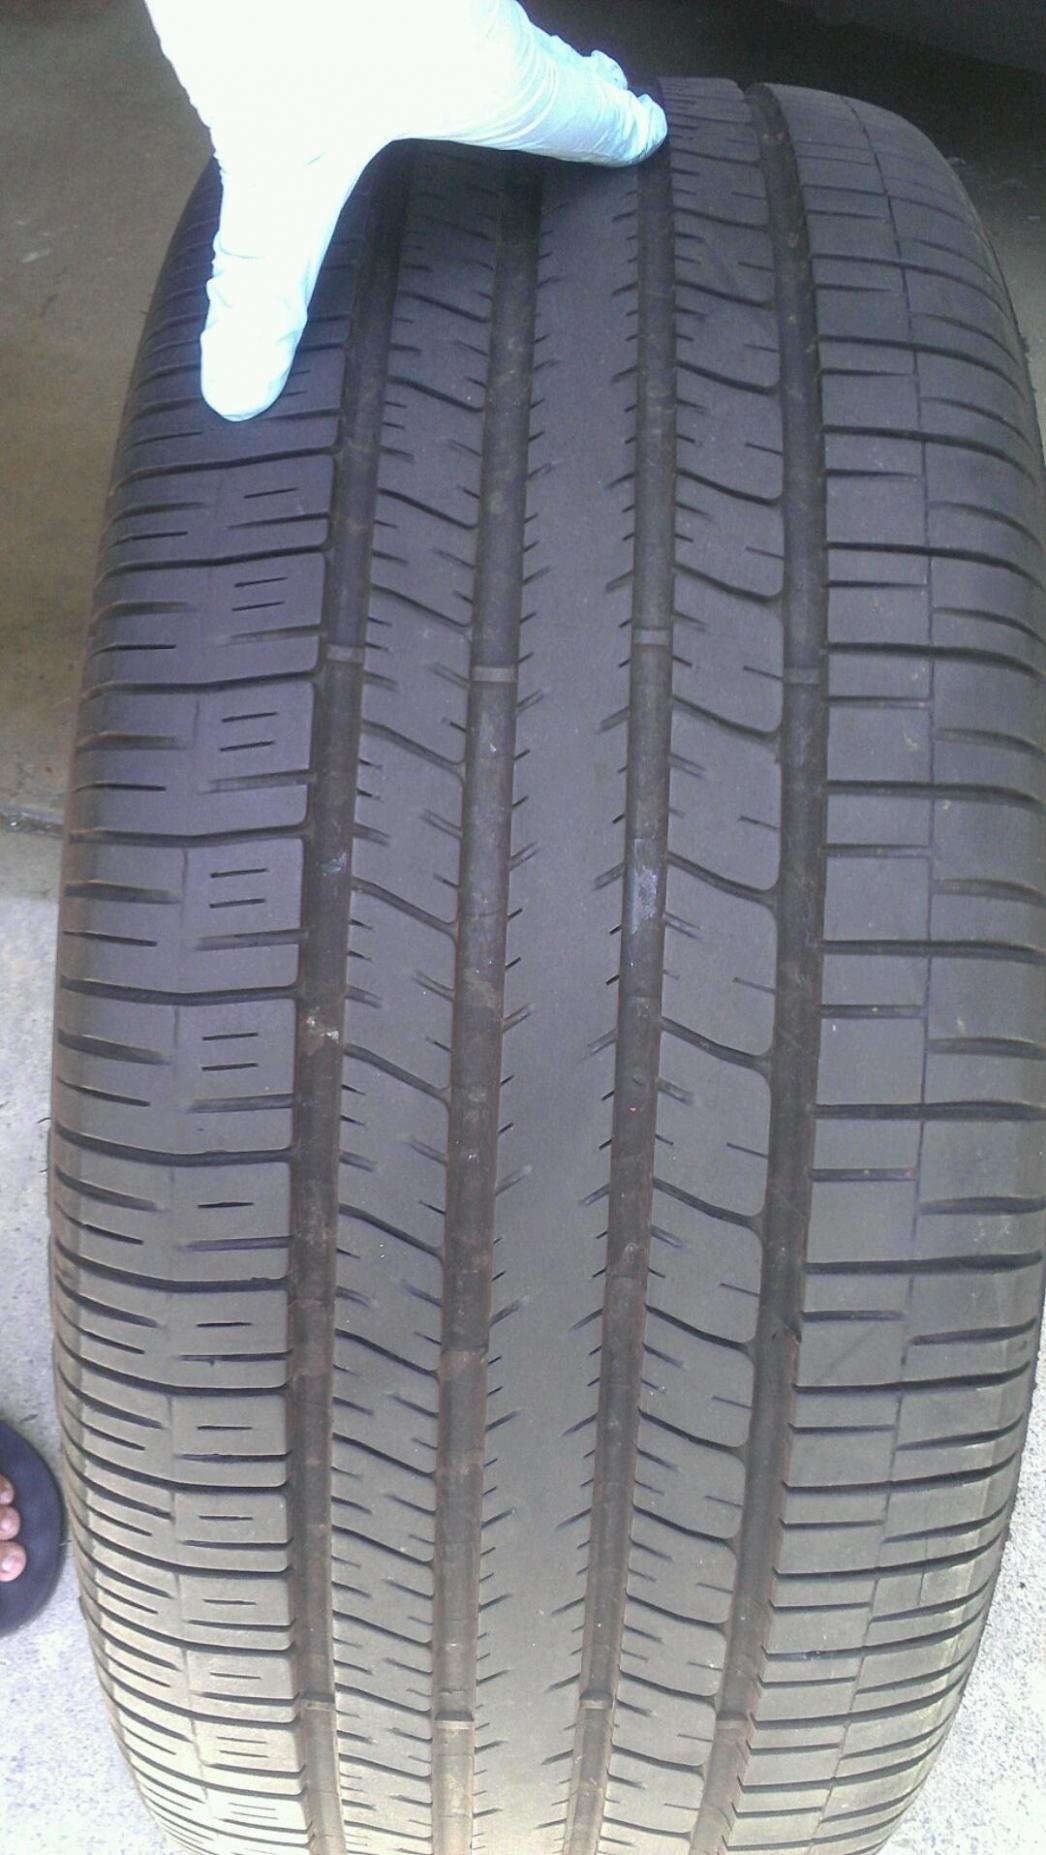 300 SRT8 Rims AND 80% Tires for sale - San Diego-srt8-tire-width-shot.jpg